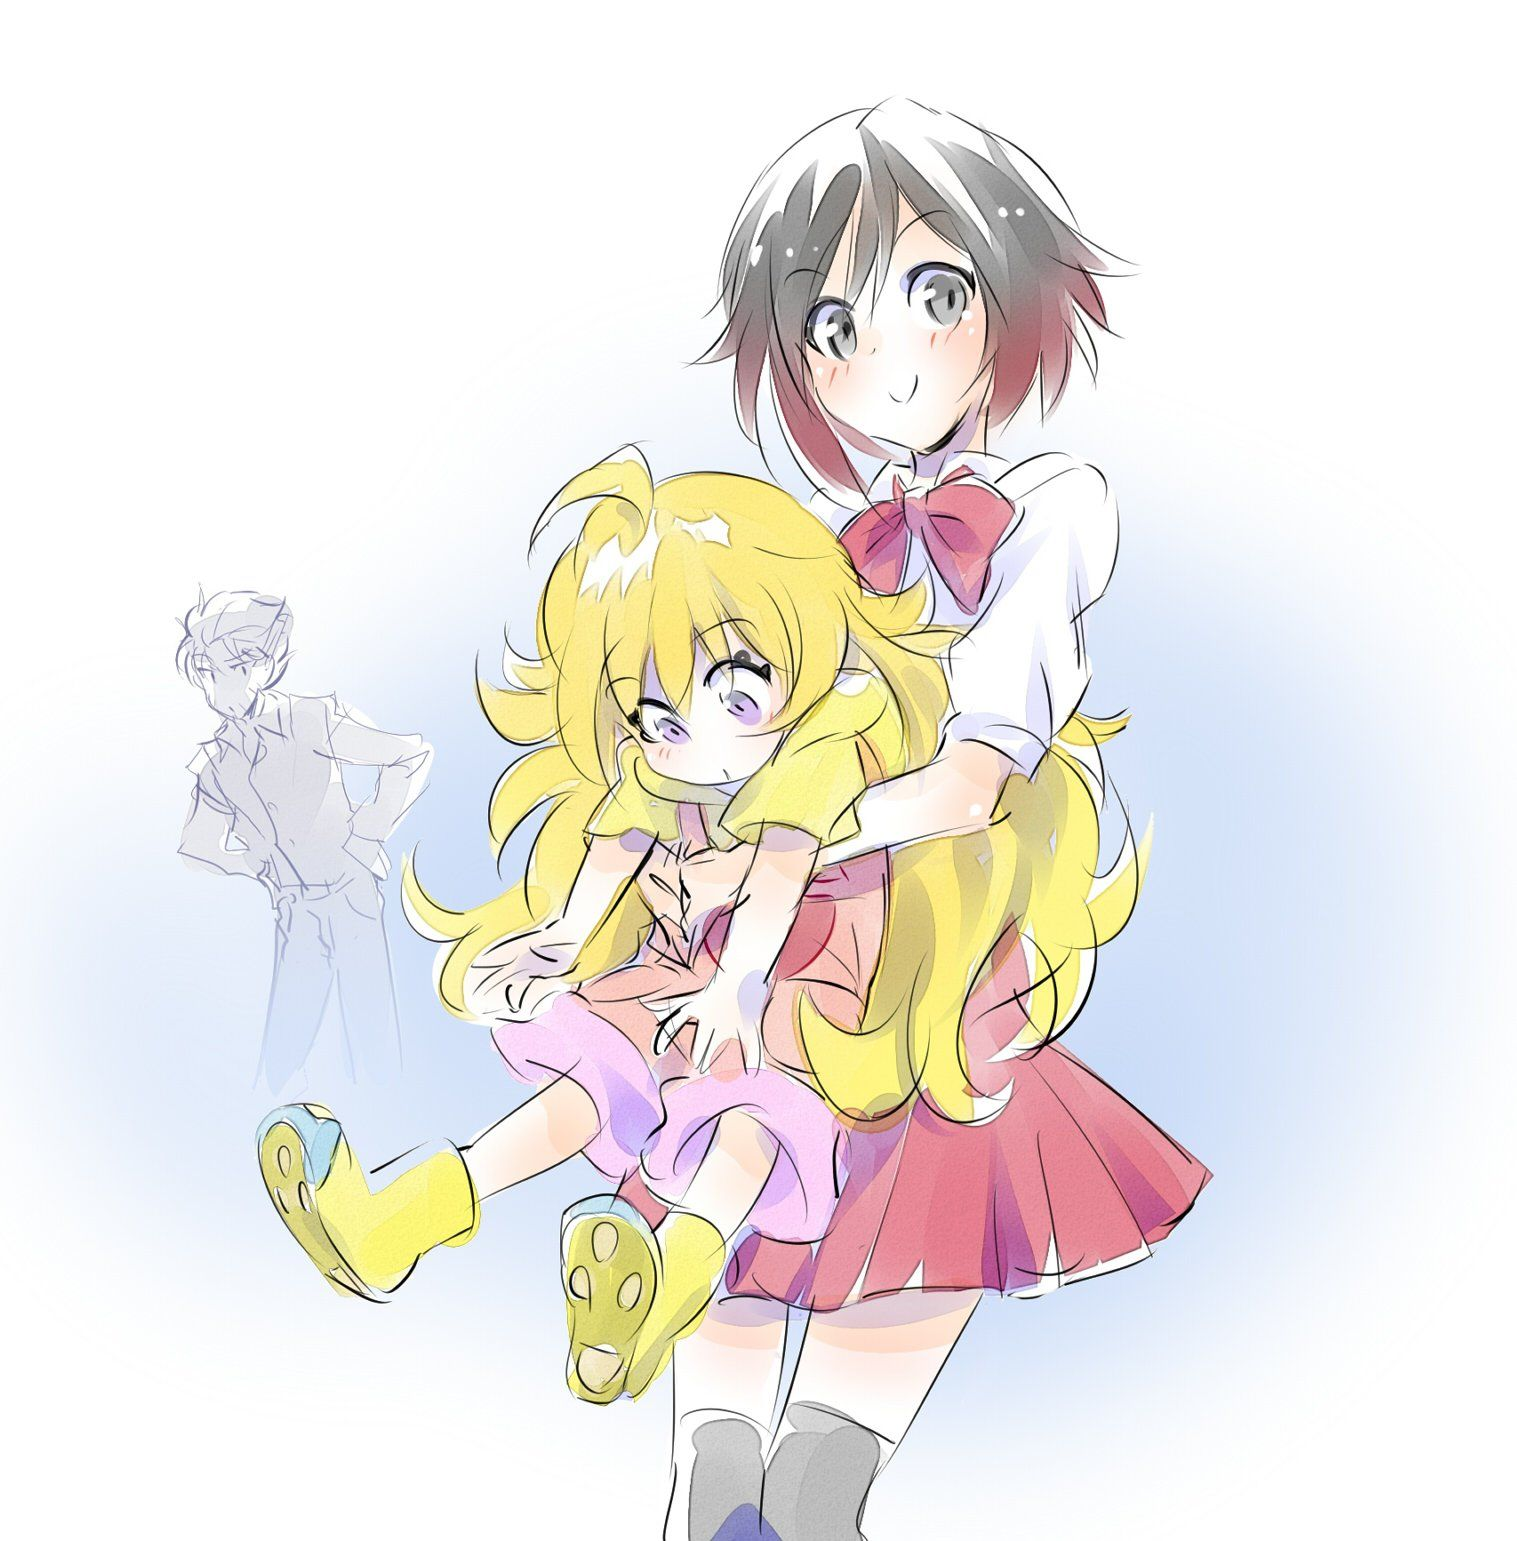 Big Sis Ruby hugging her Little Sis [いえすぱ